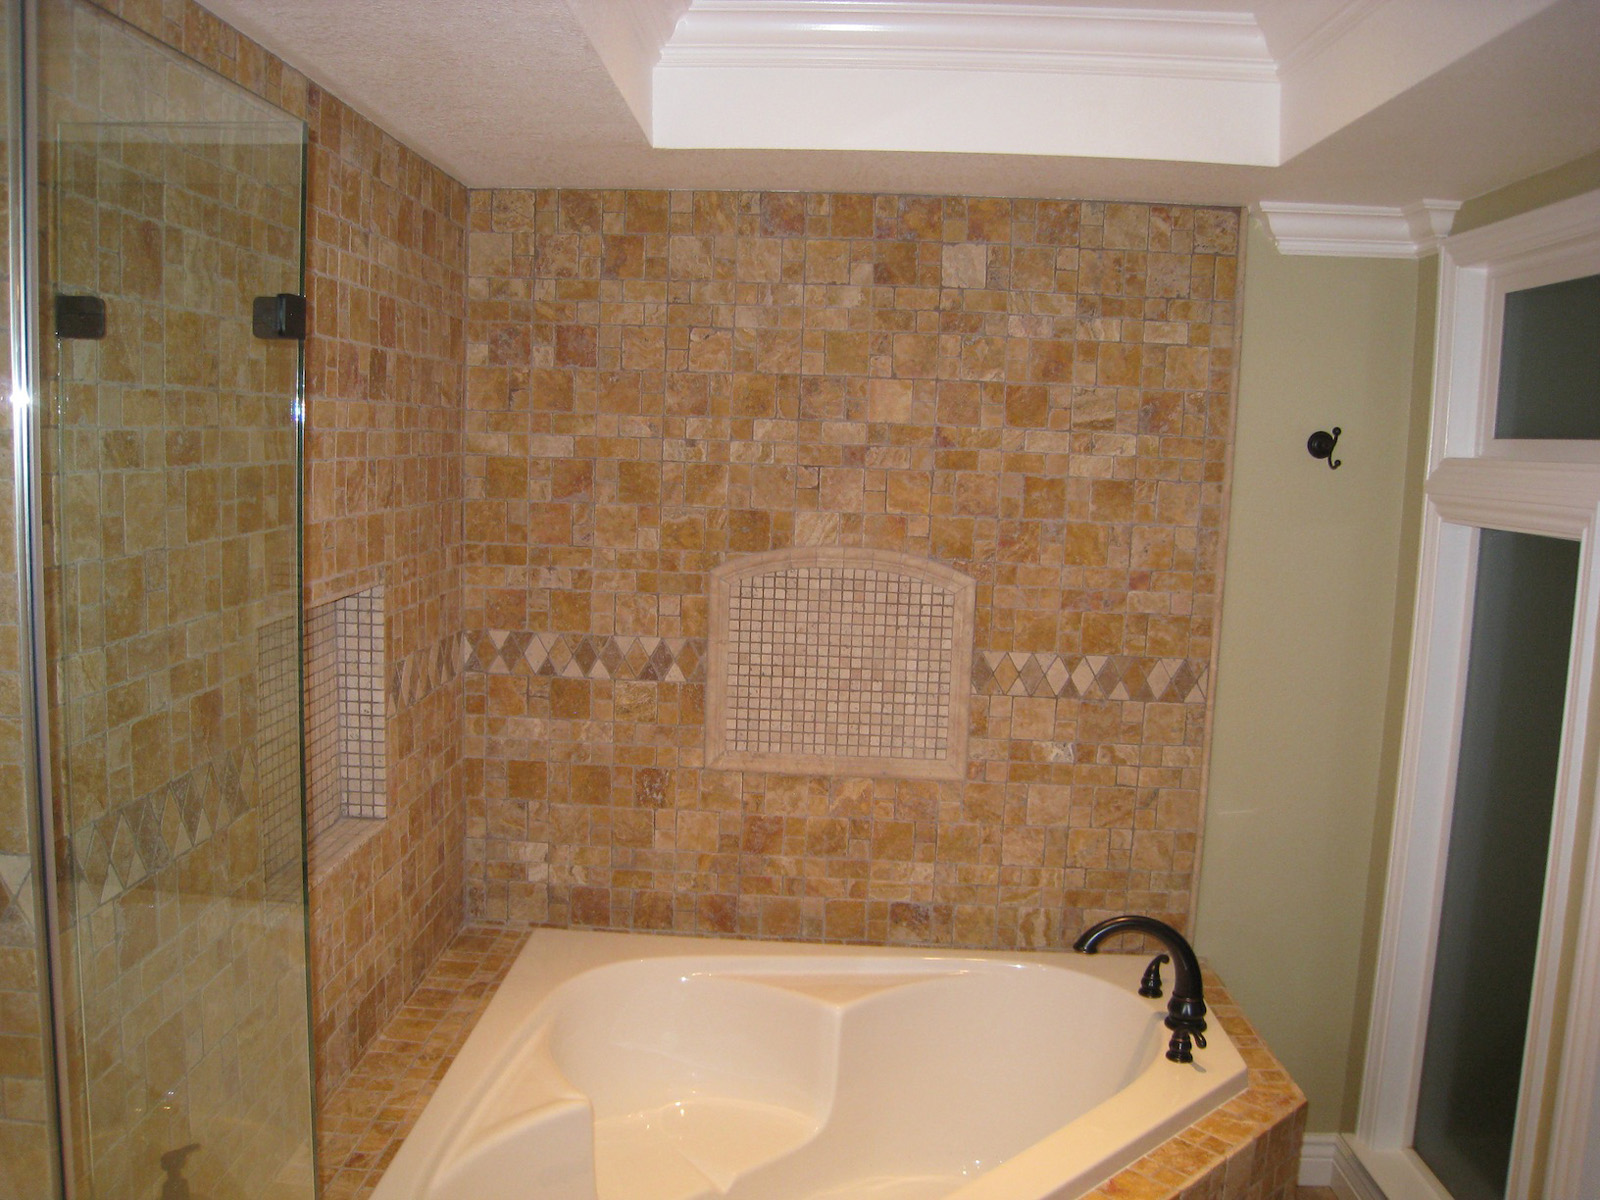 Http Www Tileideaz Com Bathroom Countertop Granite Tile Html